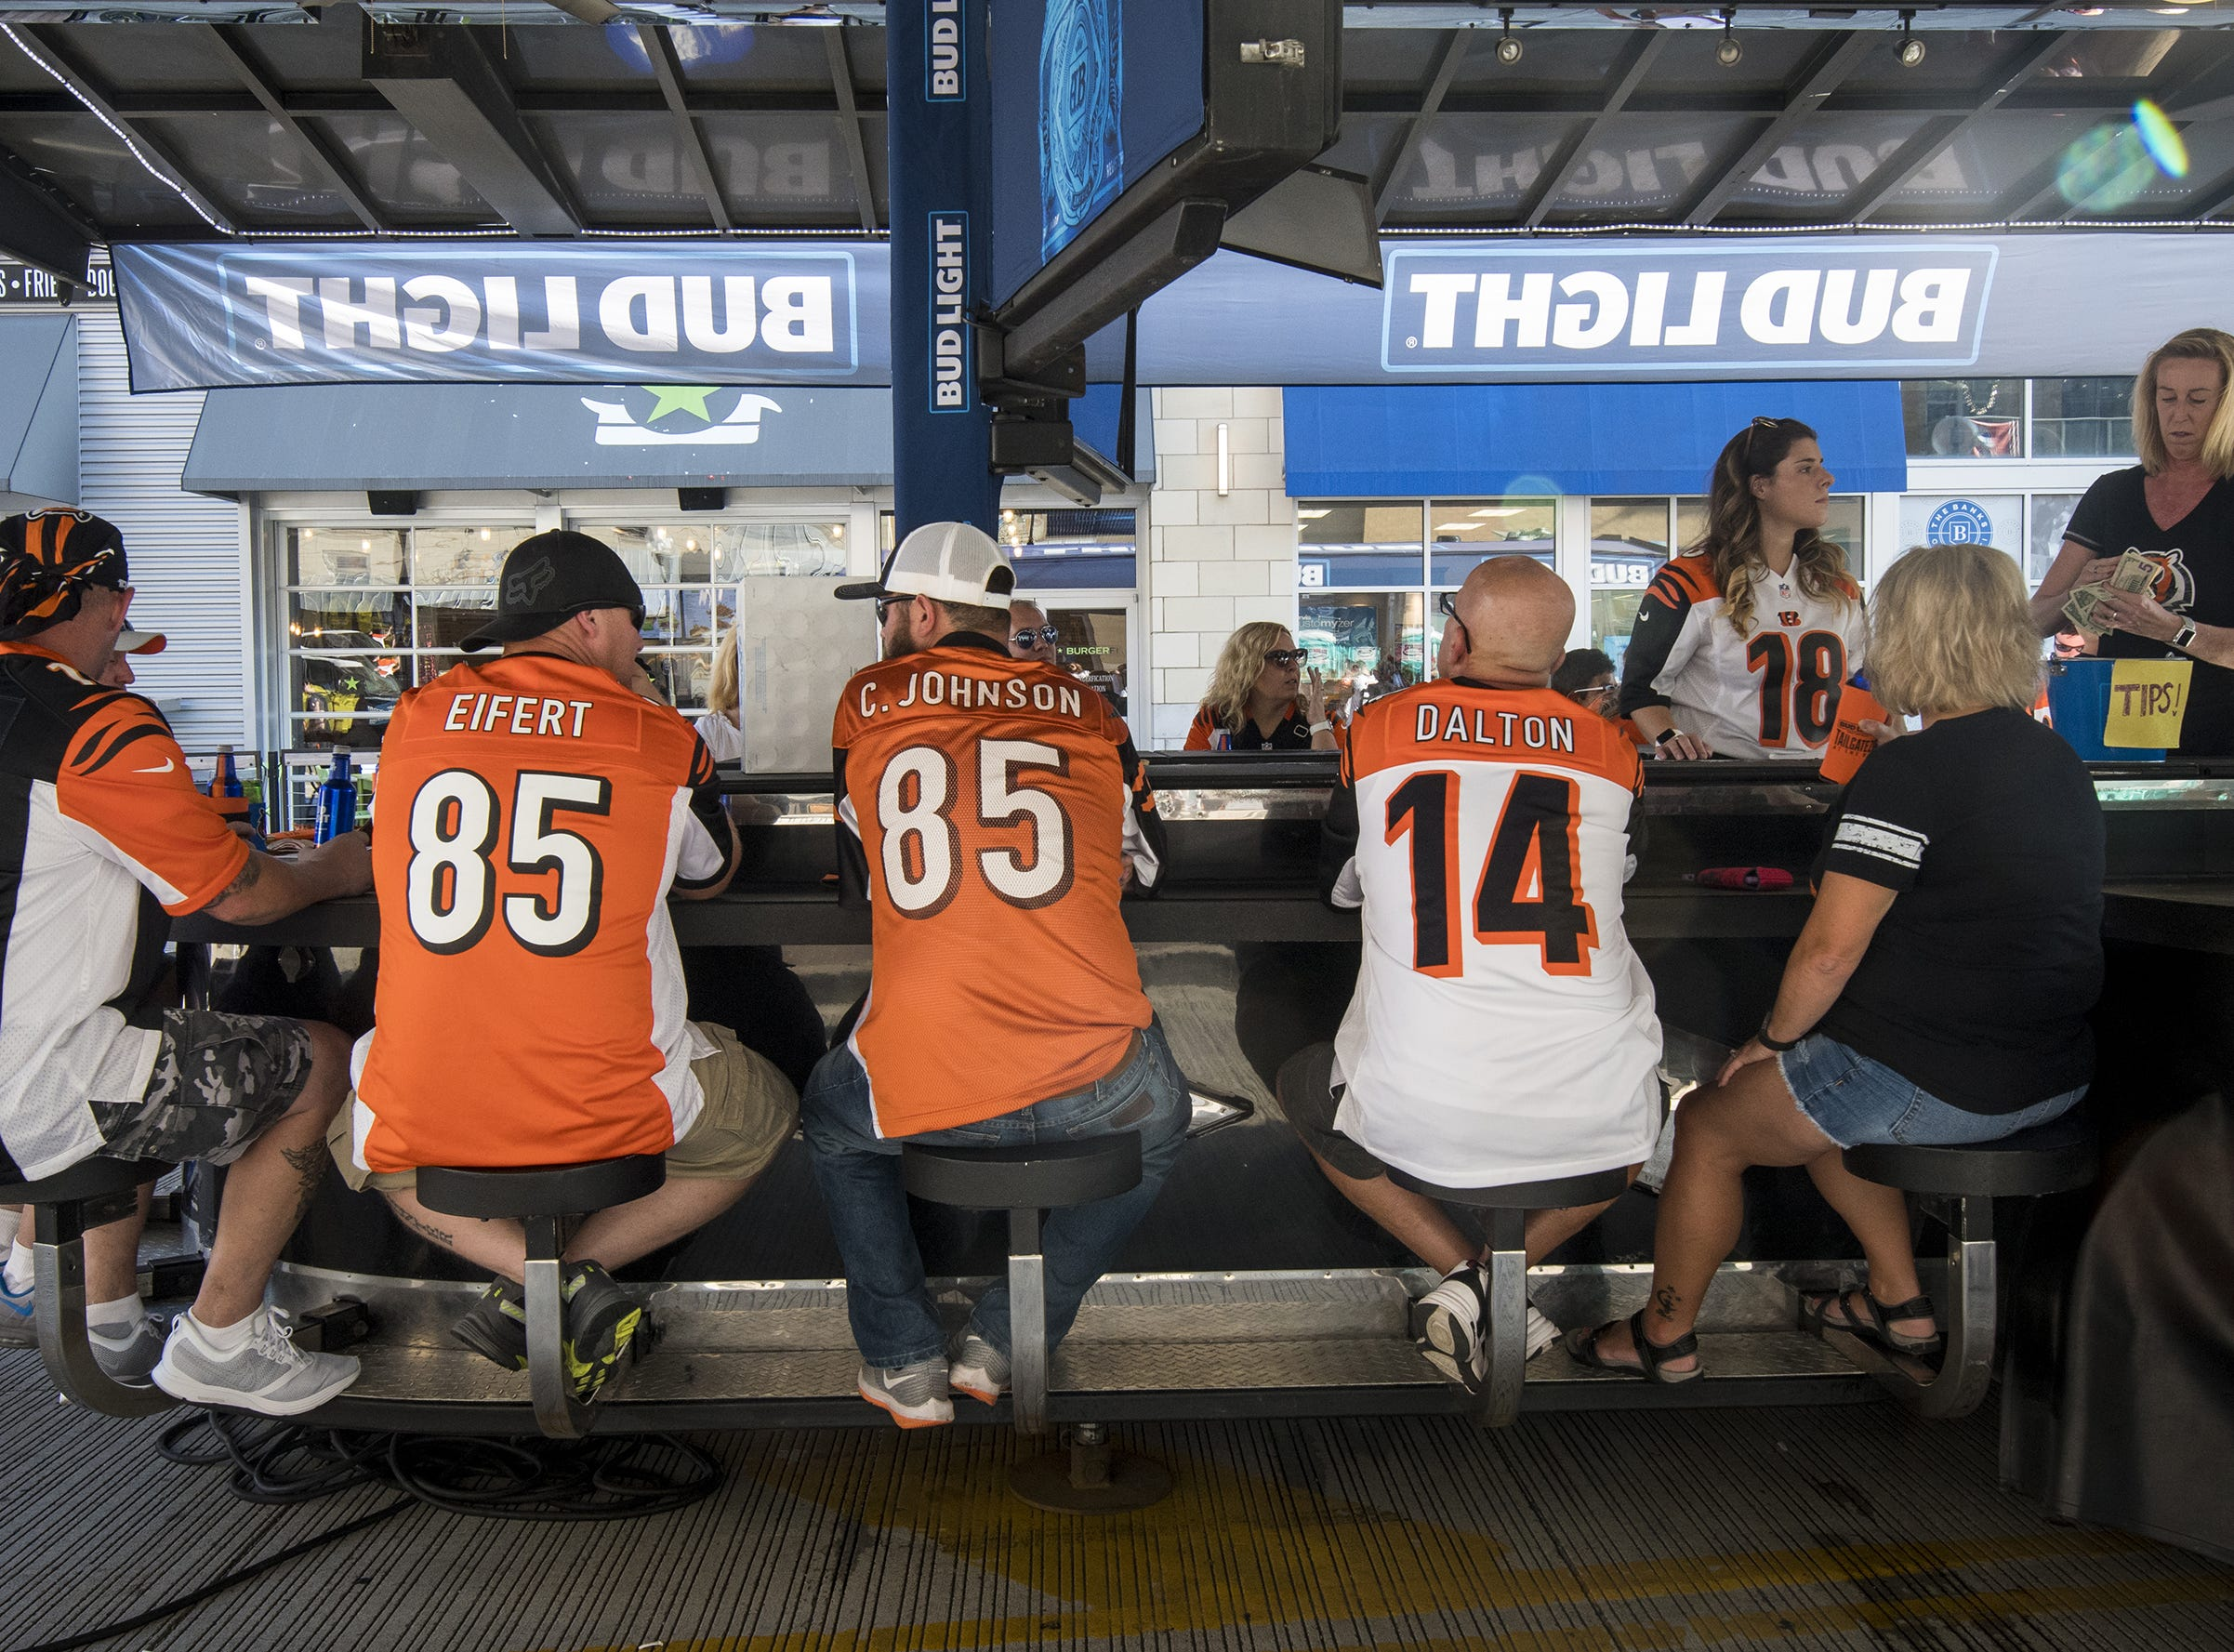 Bengals fans hang out in the Bud Light Tailgate zone before the Bengals game against the Baltimore Ravens Thursday, September 13, 2018 in Cincinnati, Ohio.